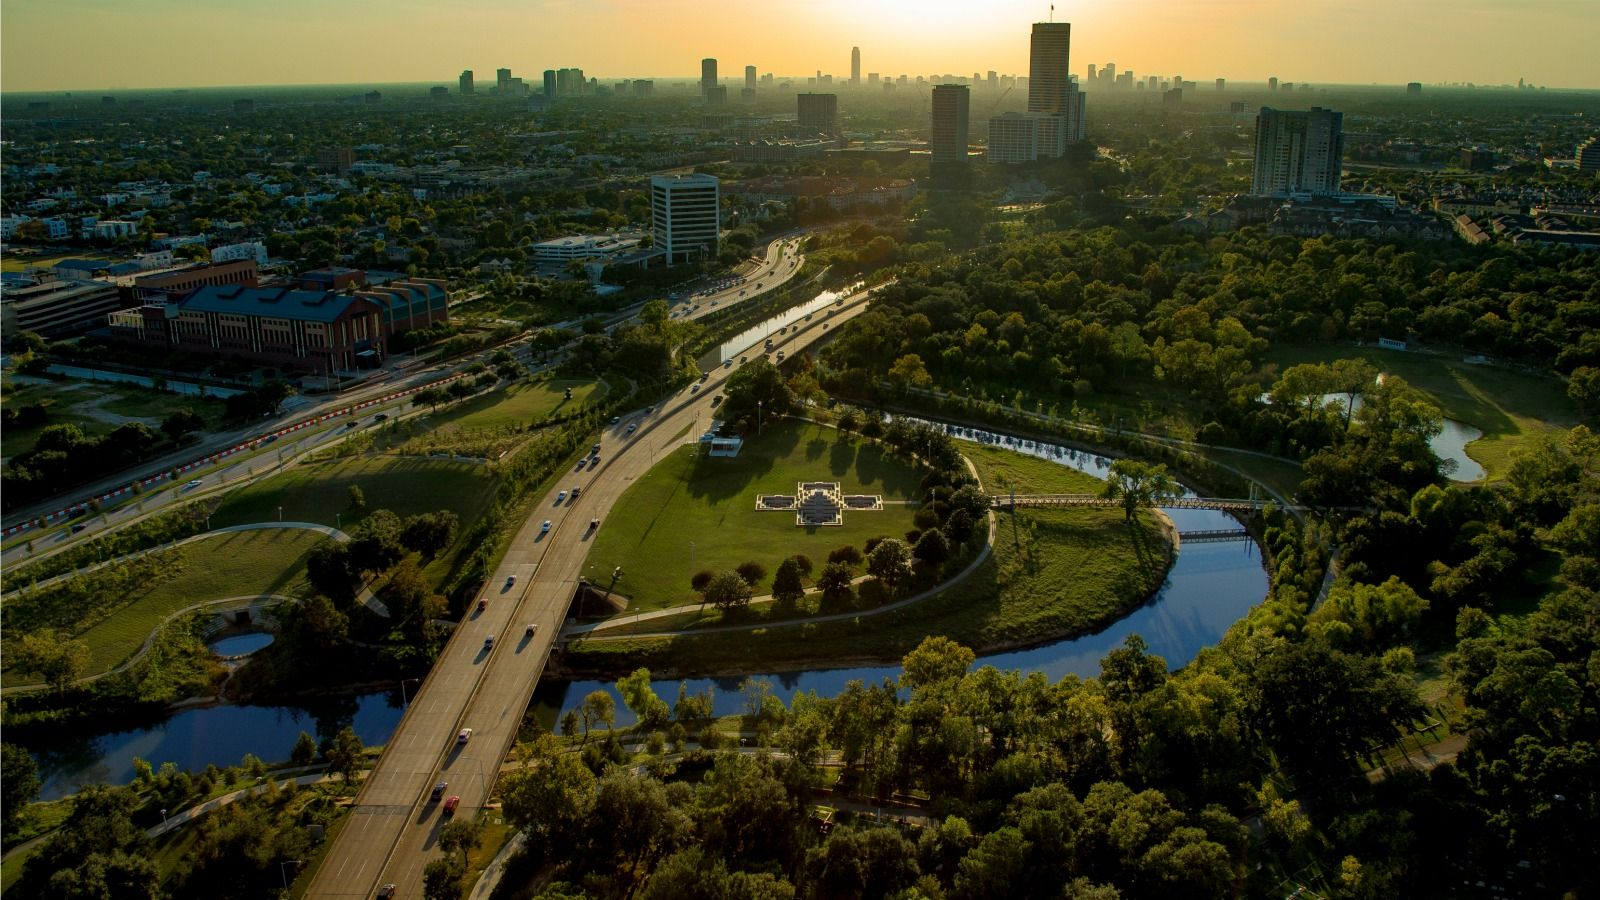 Things to Do in Houston, Texas - Memorial Park